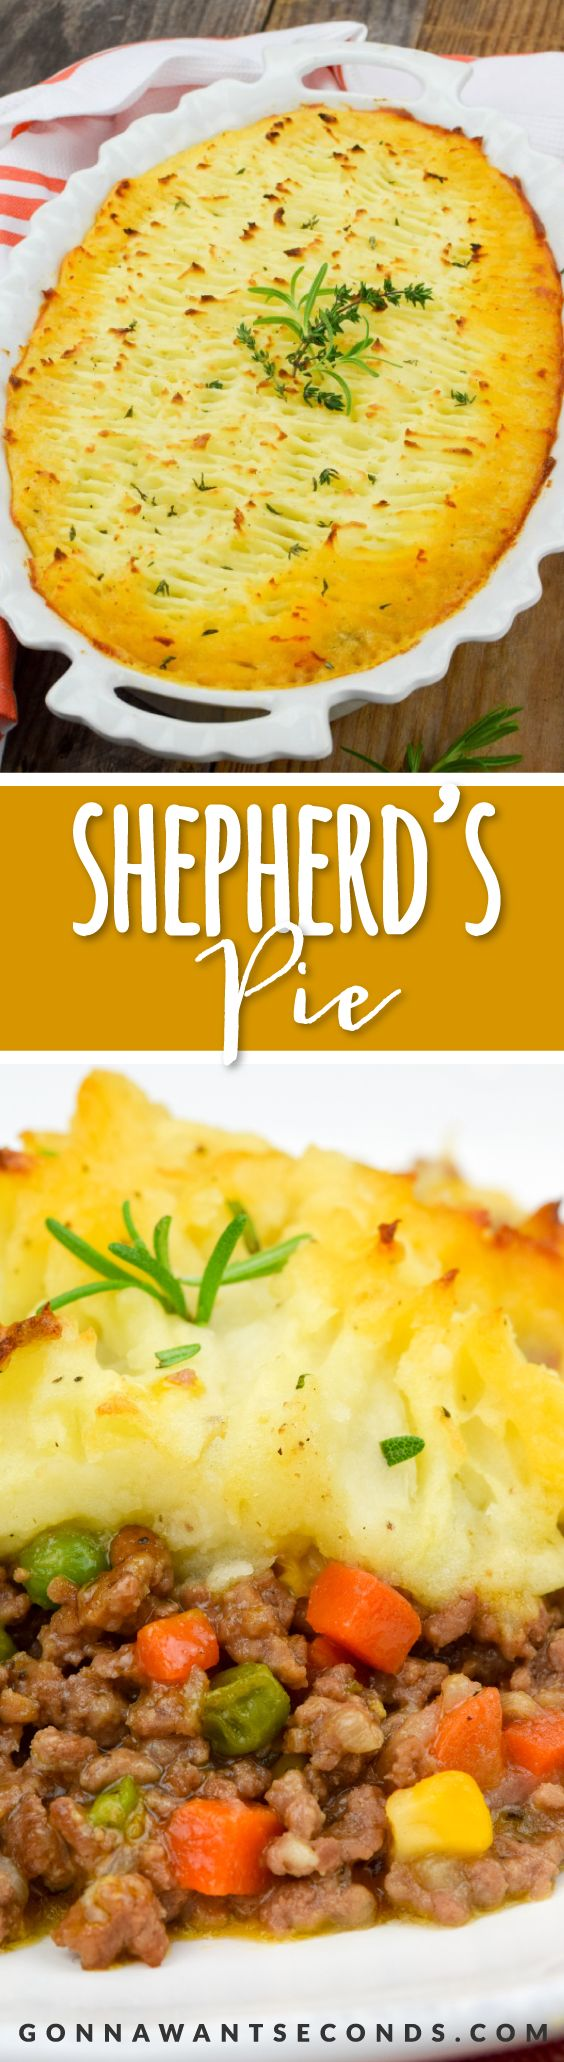 Shepherd's pie is an incredible comfort food. Delicious, super flavorful meaty filling topped with a mound of rich, buttery mashed potatoes!